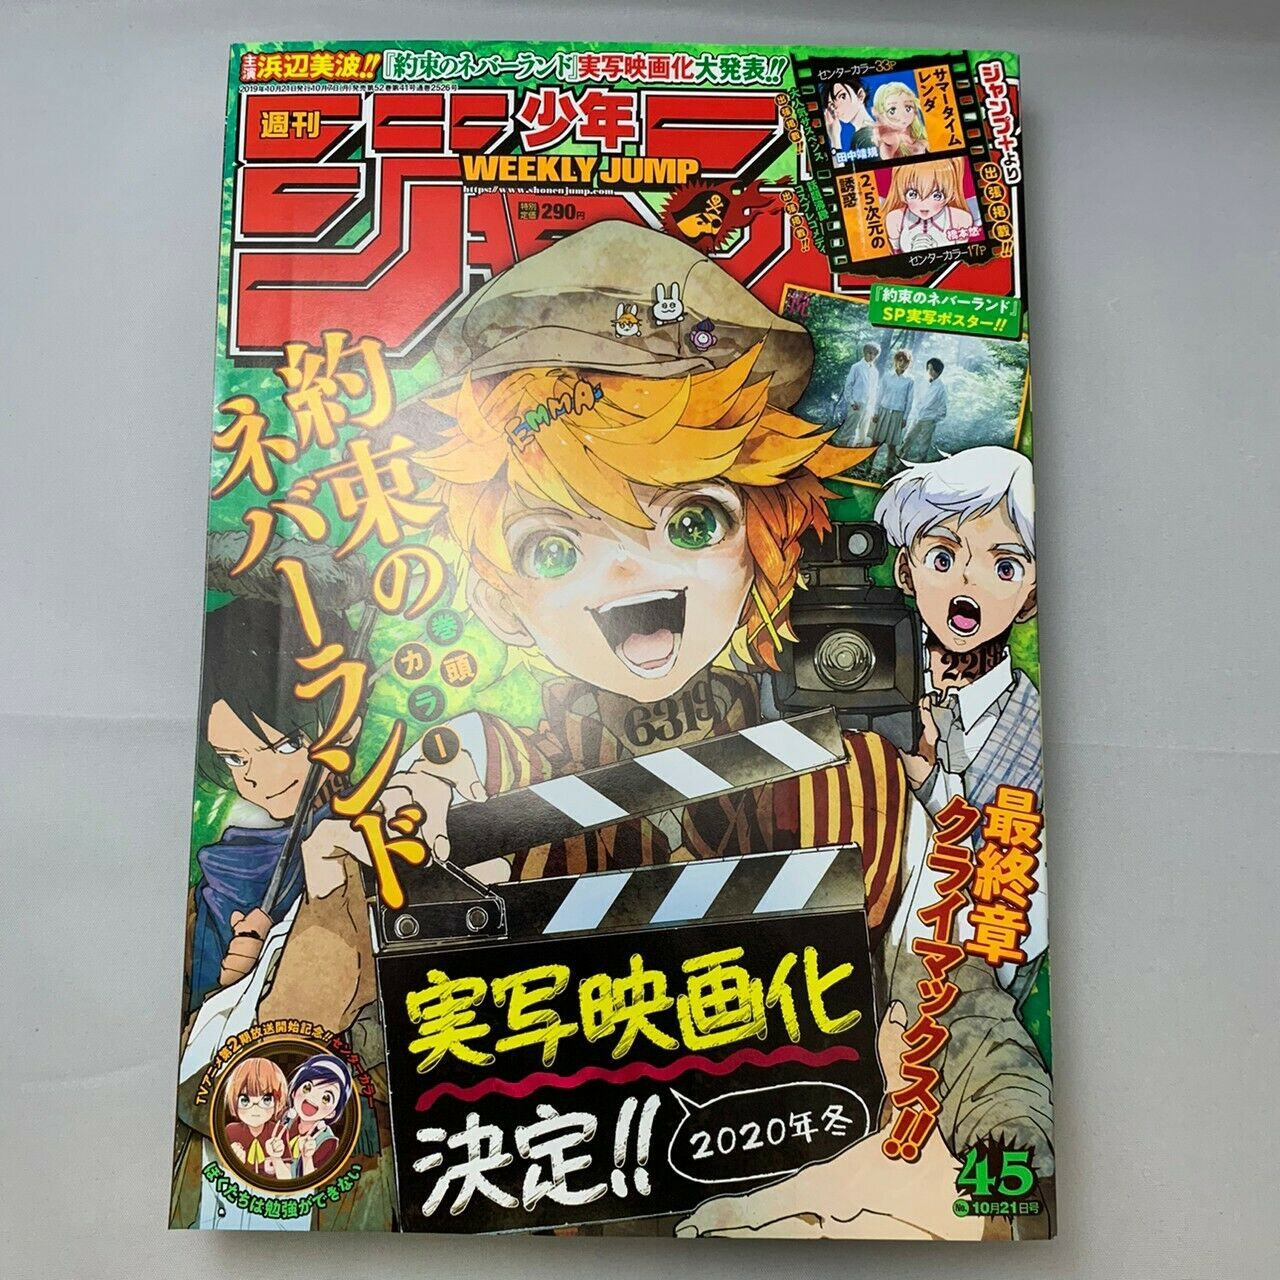 Weekly Shonen Jump Japan No 45 2019 The Promised Neverland Cover Manga Magazine For Sale Online Ebay